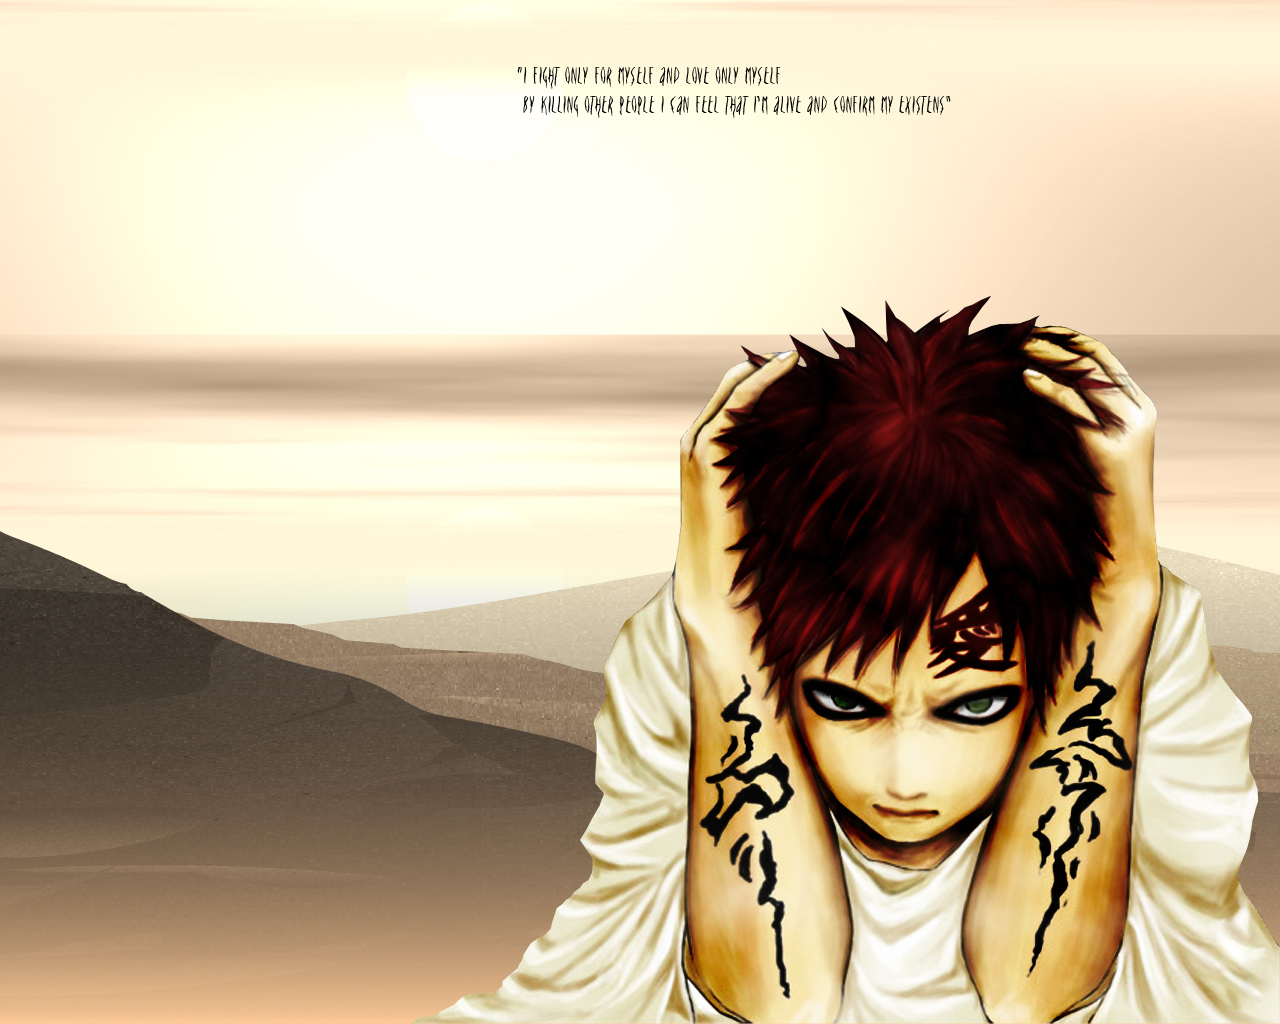 Naruto and gaara wallpaper animebay wallpapers Chainimage 1280x1024